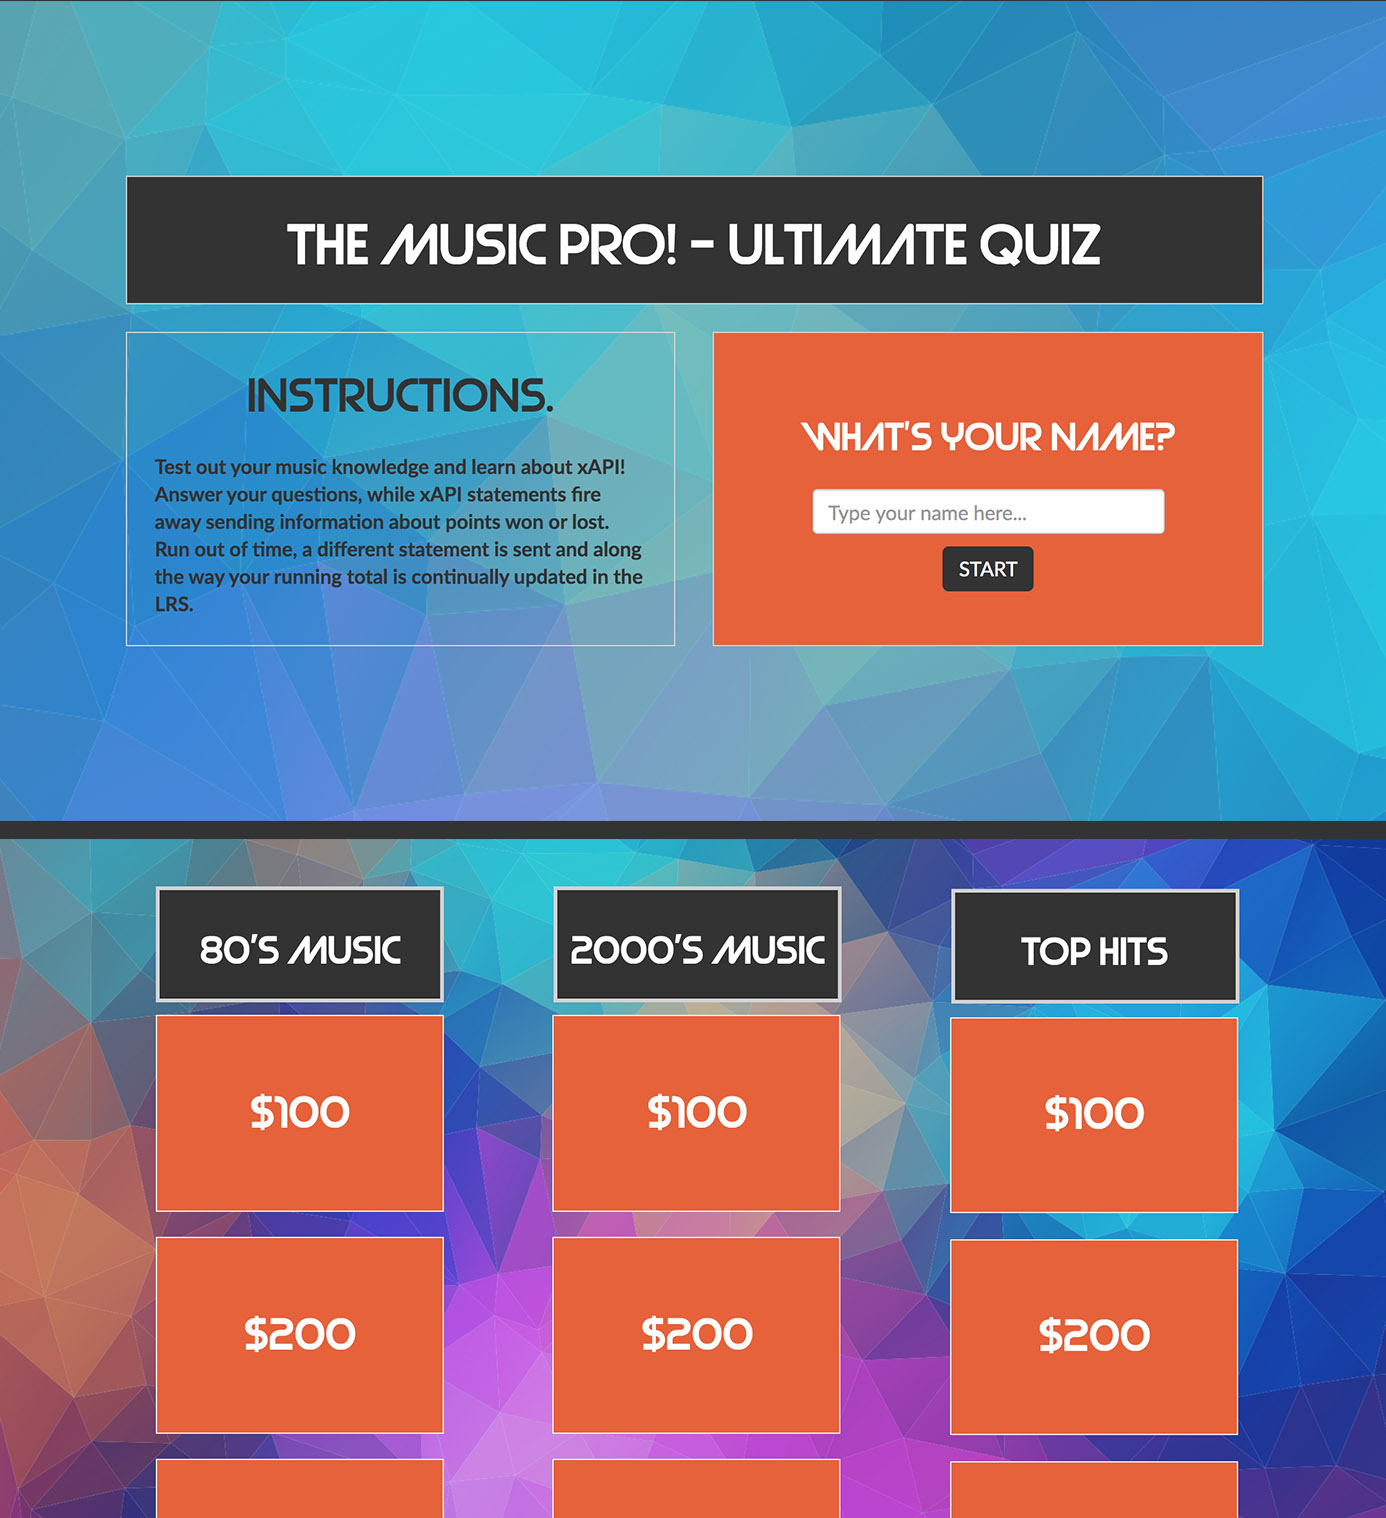 The Music Pro! Ultimate Quiz screenshots